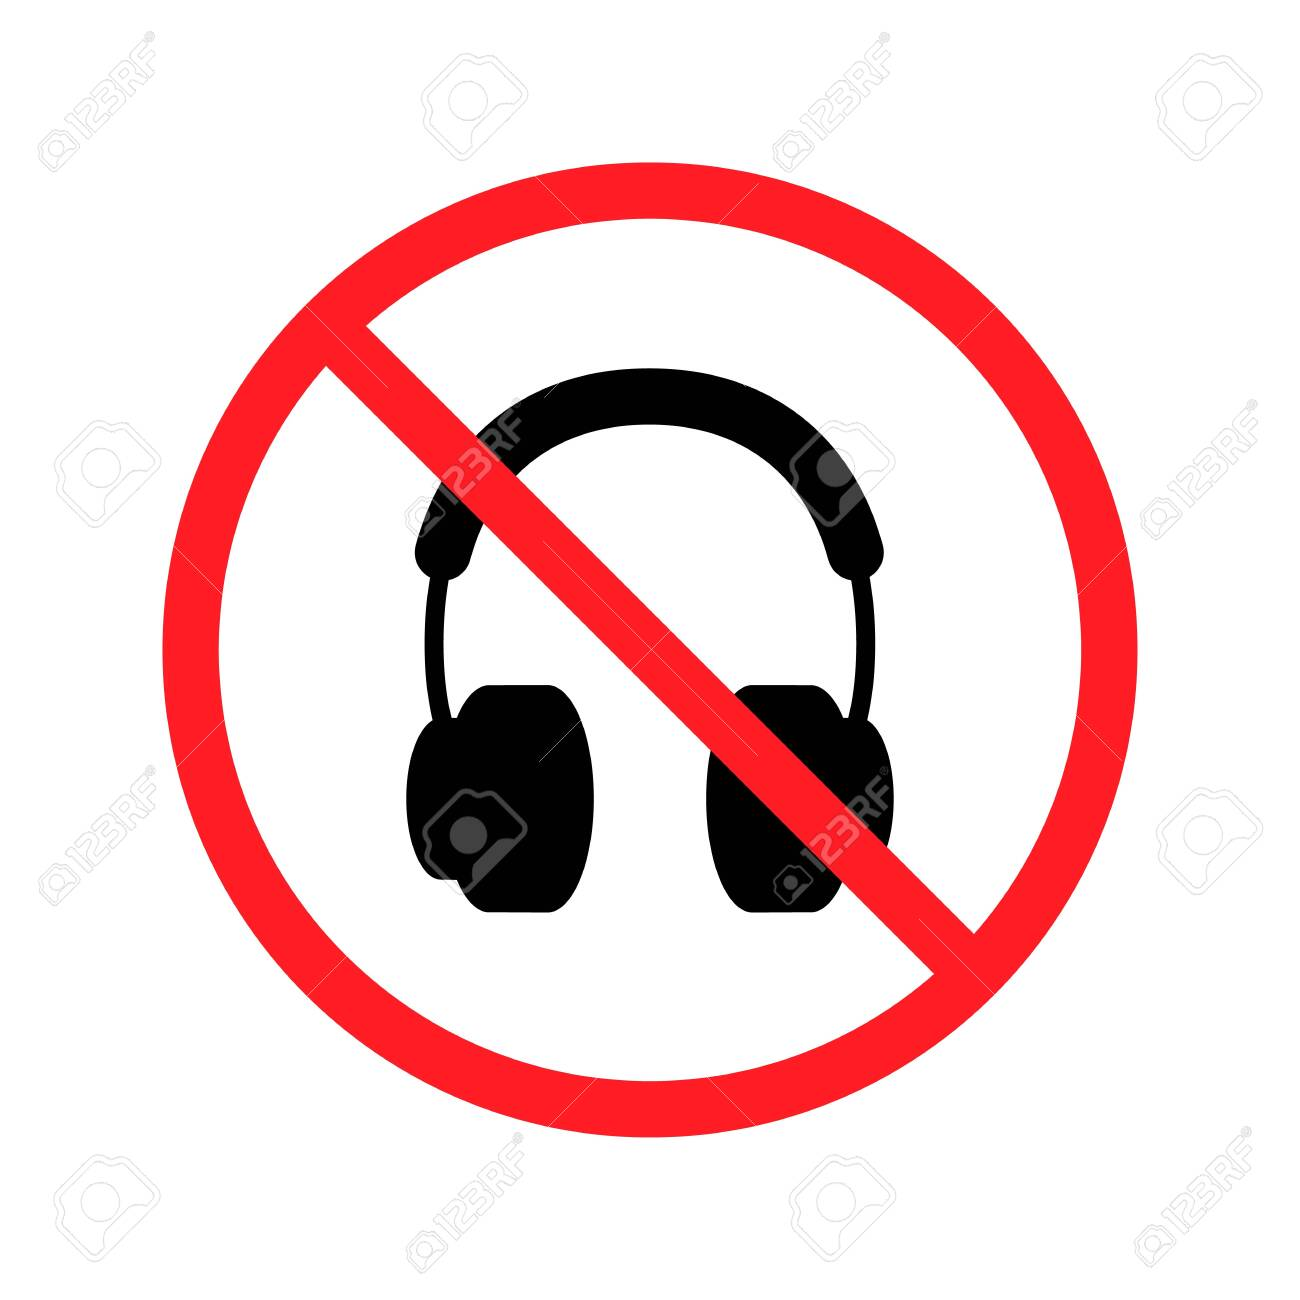 No headphones signs on white background. Vector illustration. - 148200328